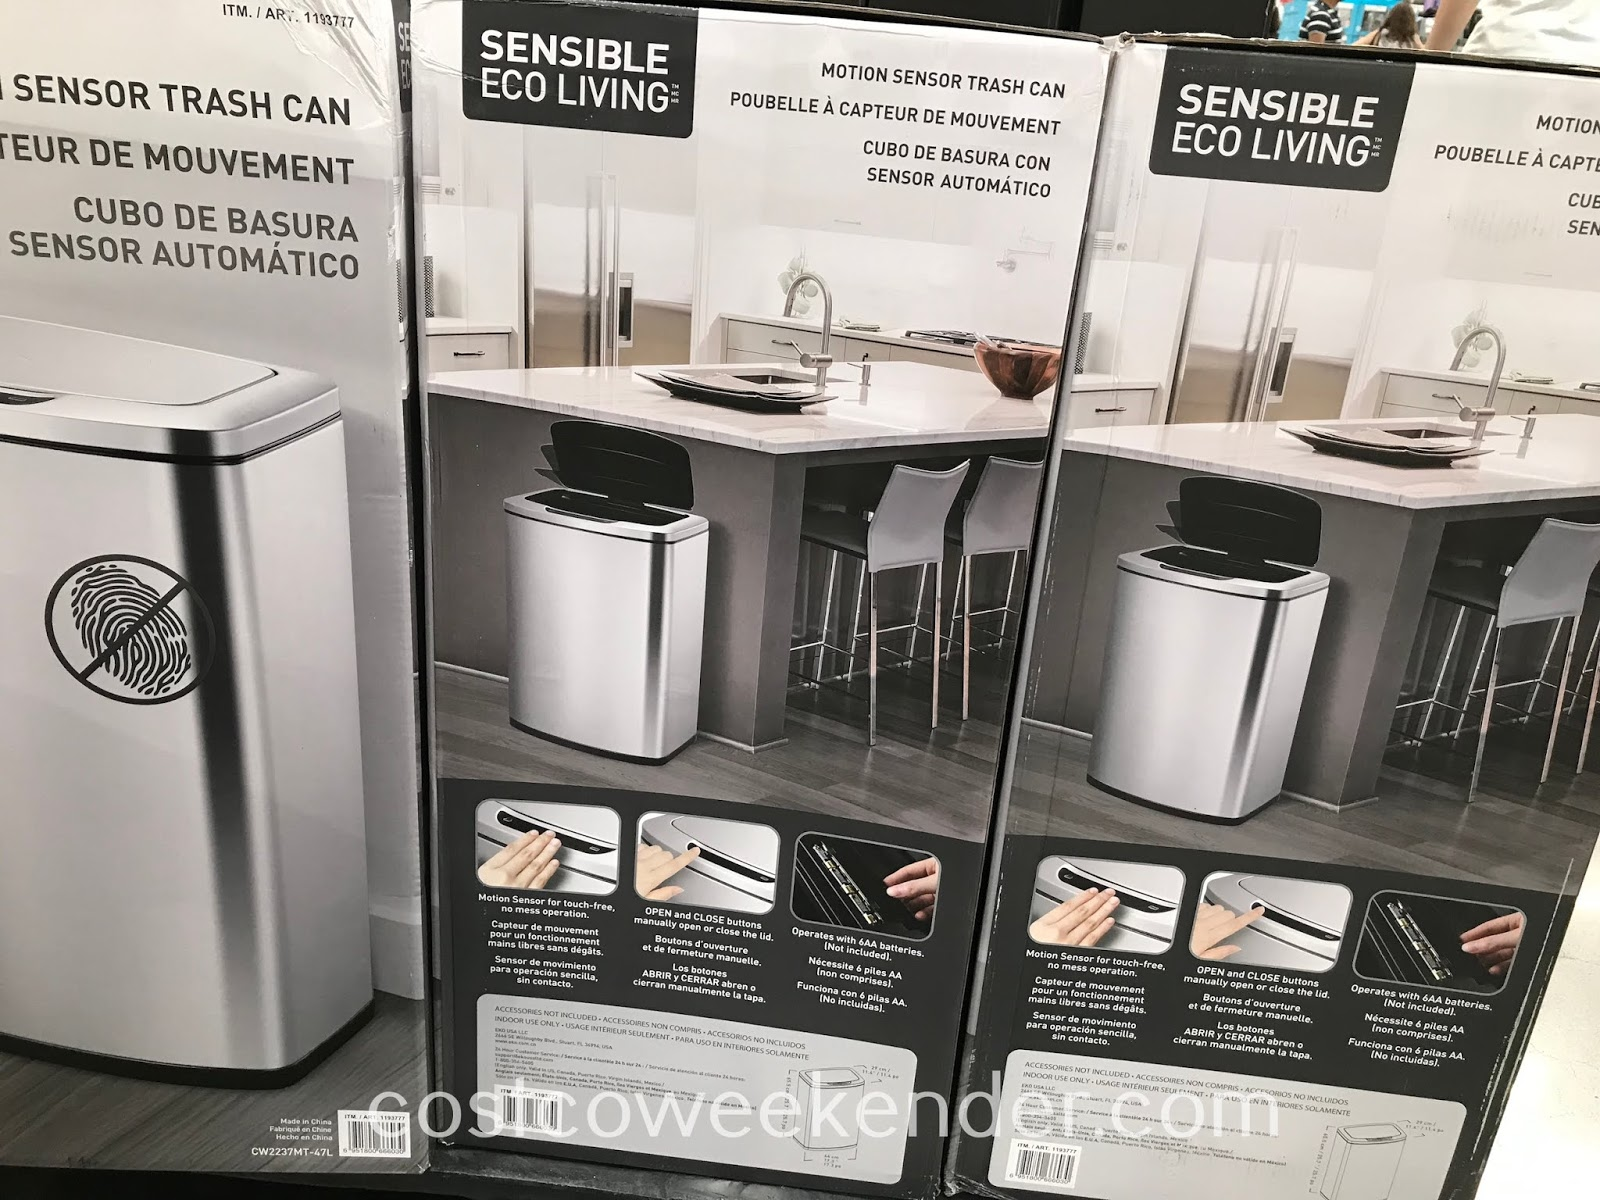 Costco 1193777 - Eko 47L Motion Sensor Trash Can: great for any kitchen